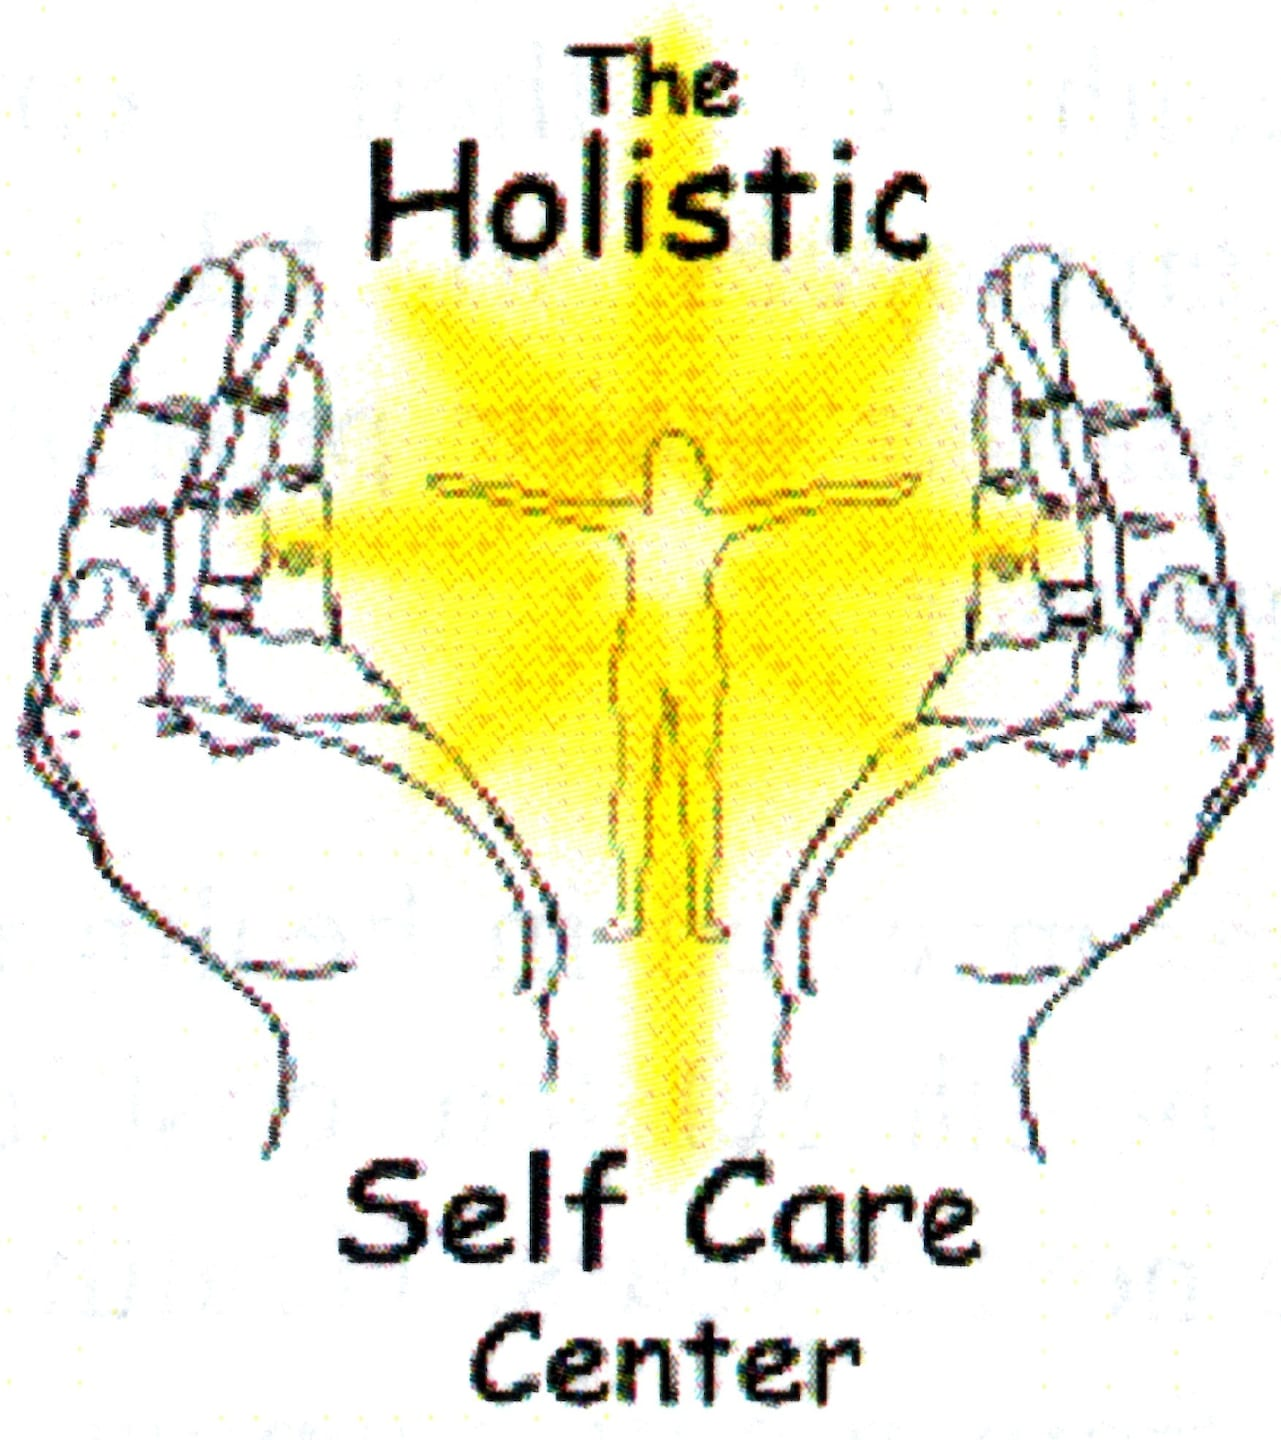 The Holistic Self Care Center